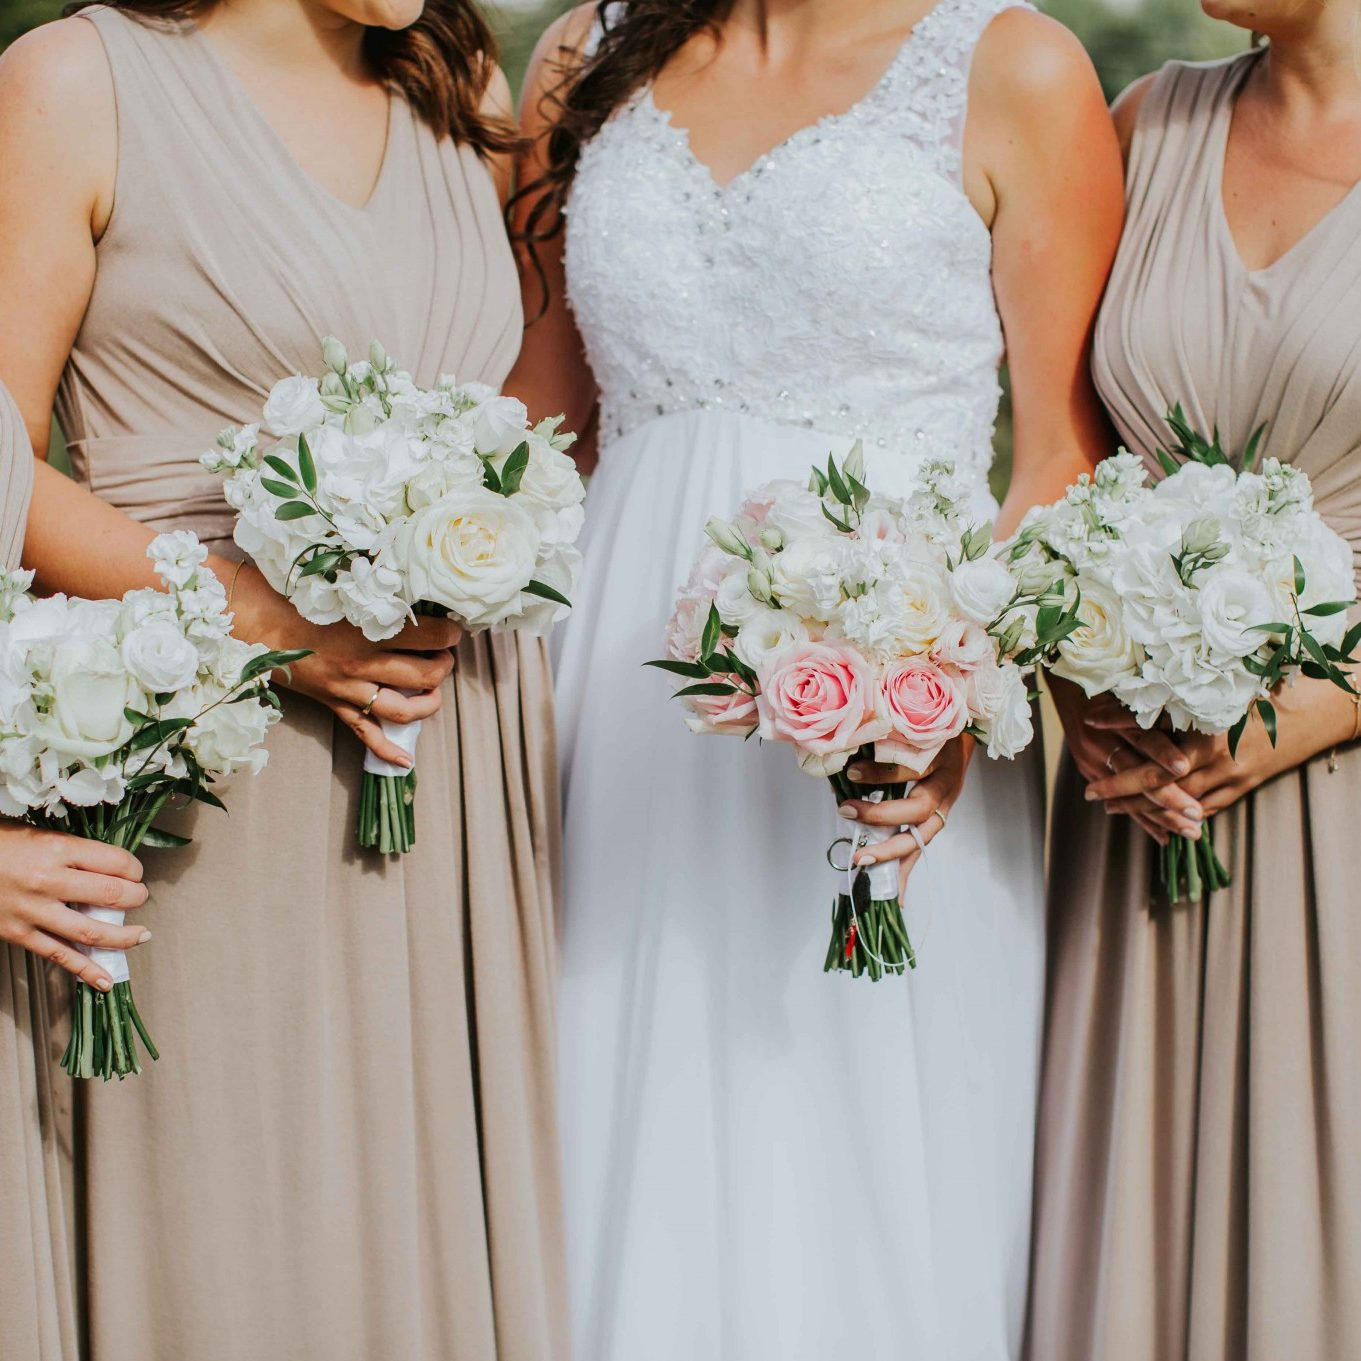 Wedding Flower Packages Cheap: Deluxe Bridal Party Flower Package $940.00